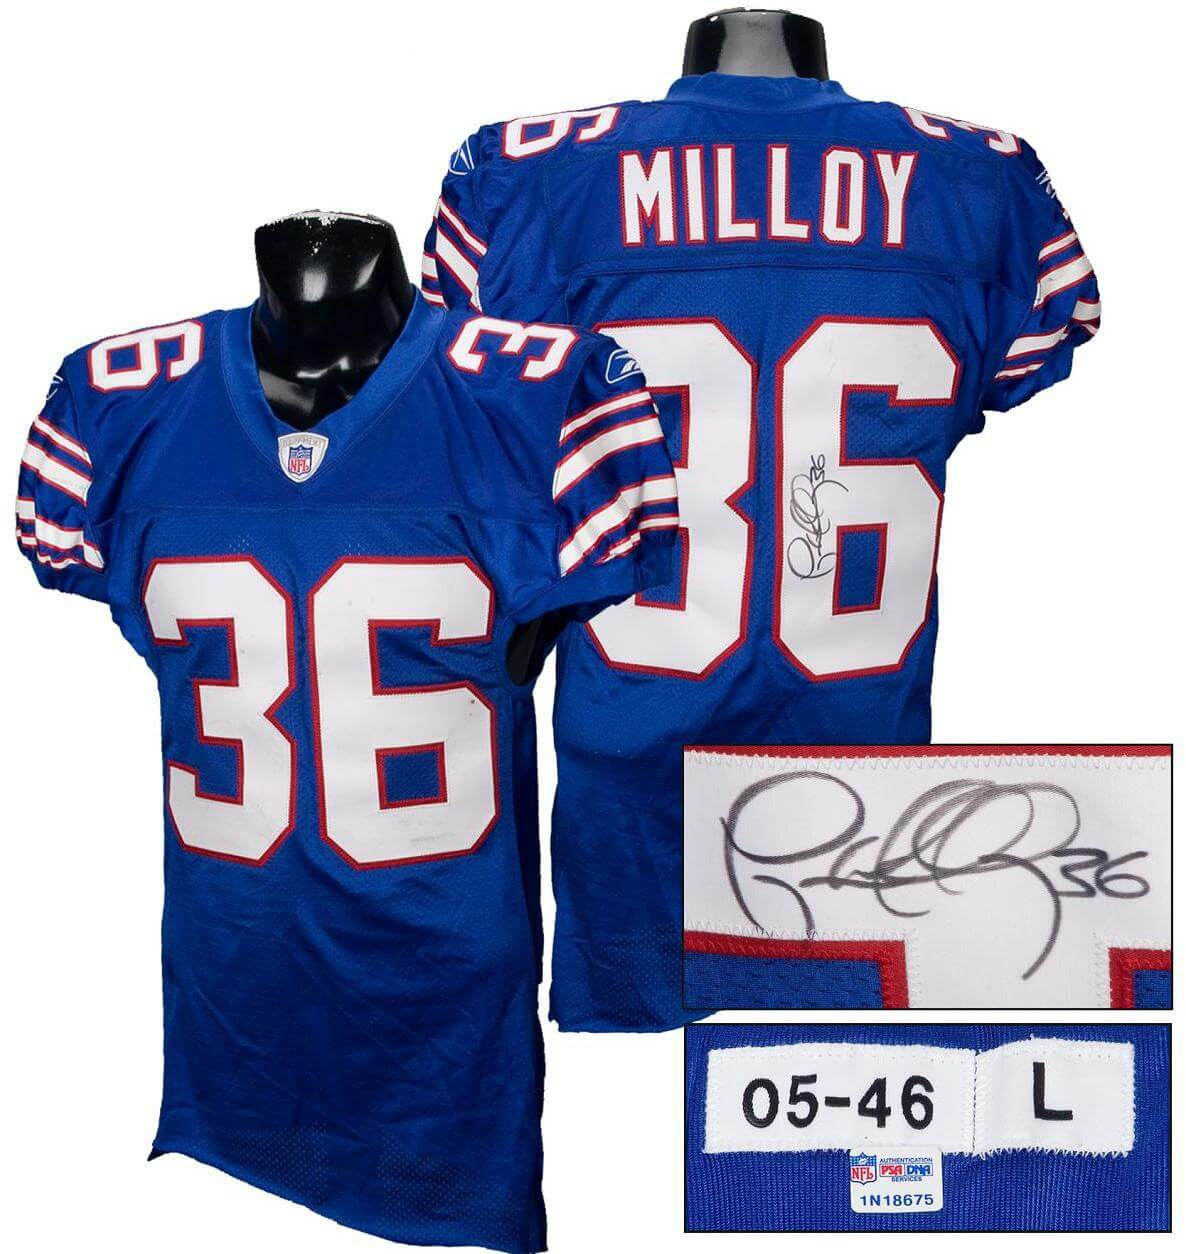 Lawyer Milloy Game-Used Signed Bills Jersey w/NFL Auction Certificate